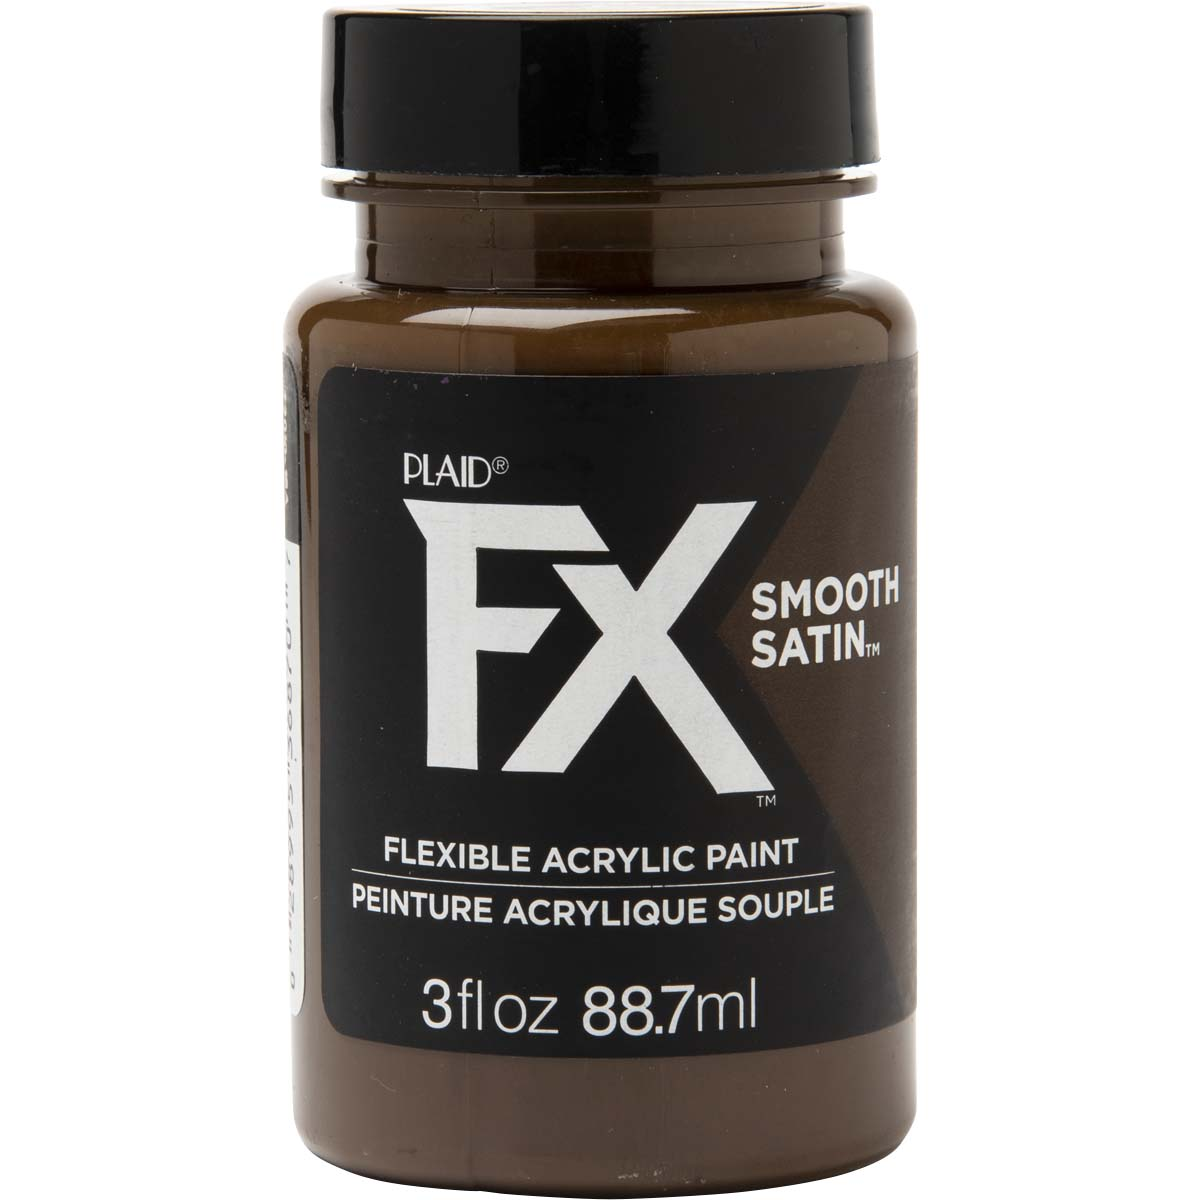 PlaidFX Smooth Satin Flexible Acrylic Paint - Charred Root, 3 oz. - 36870